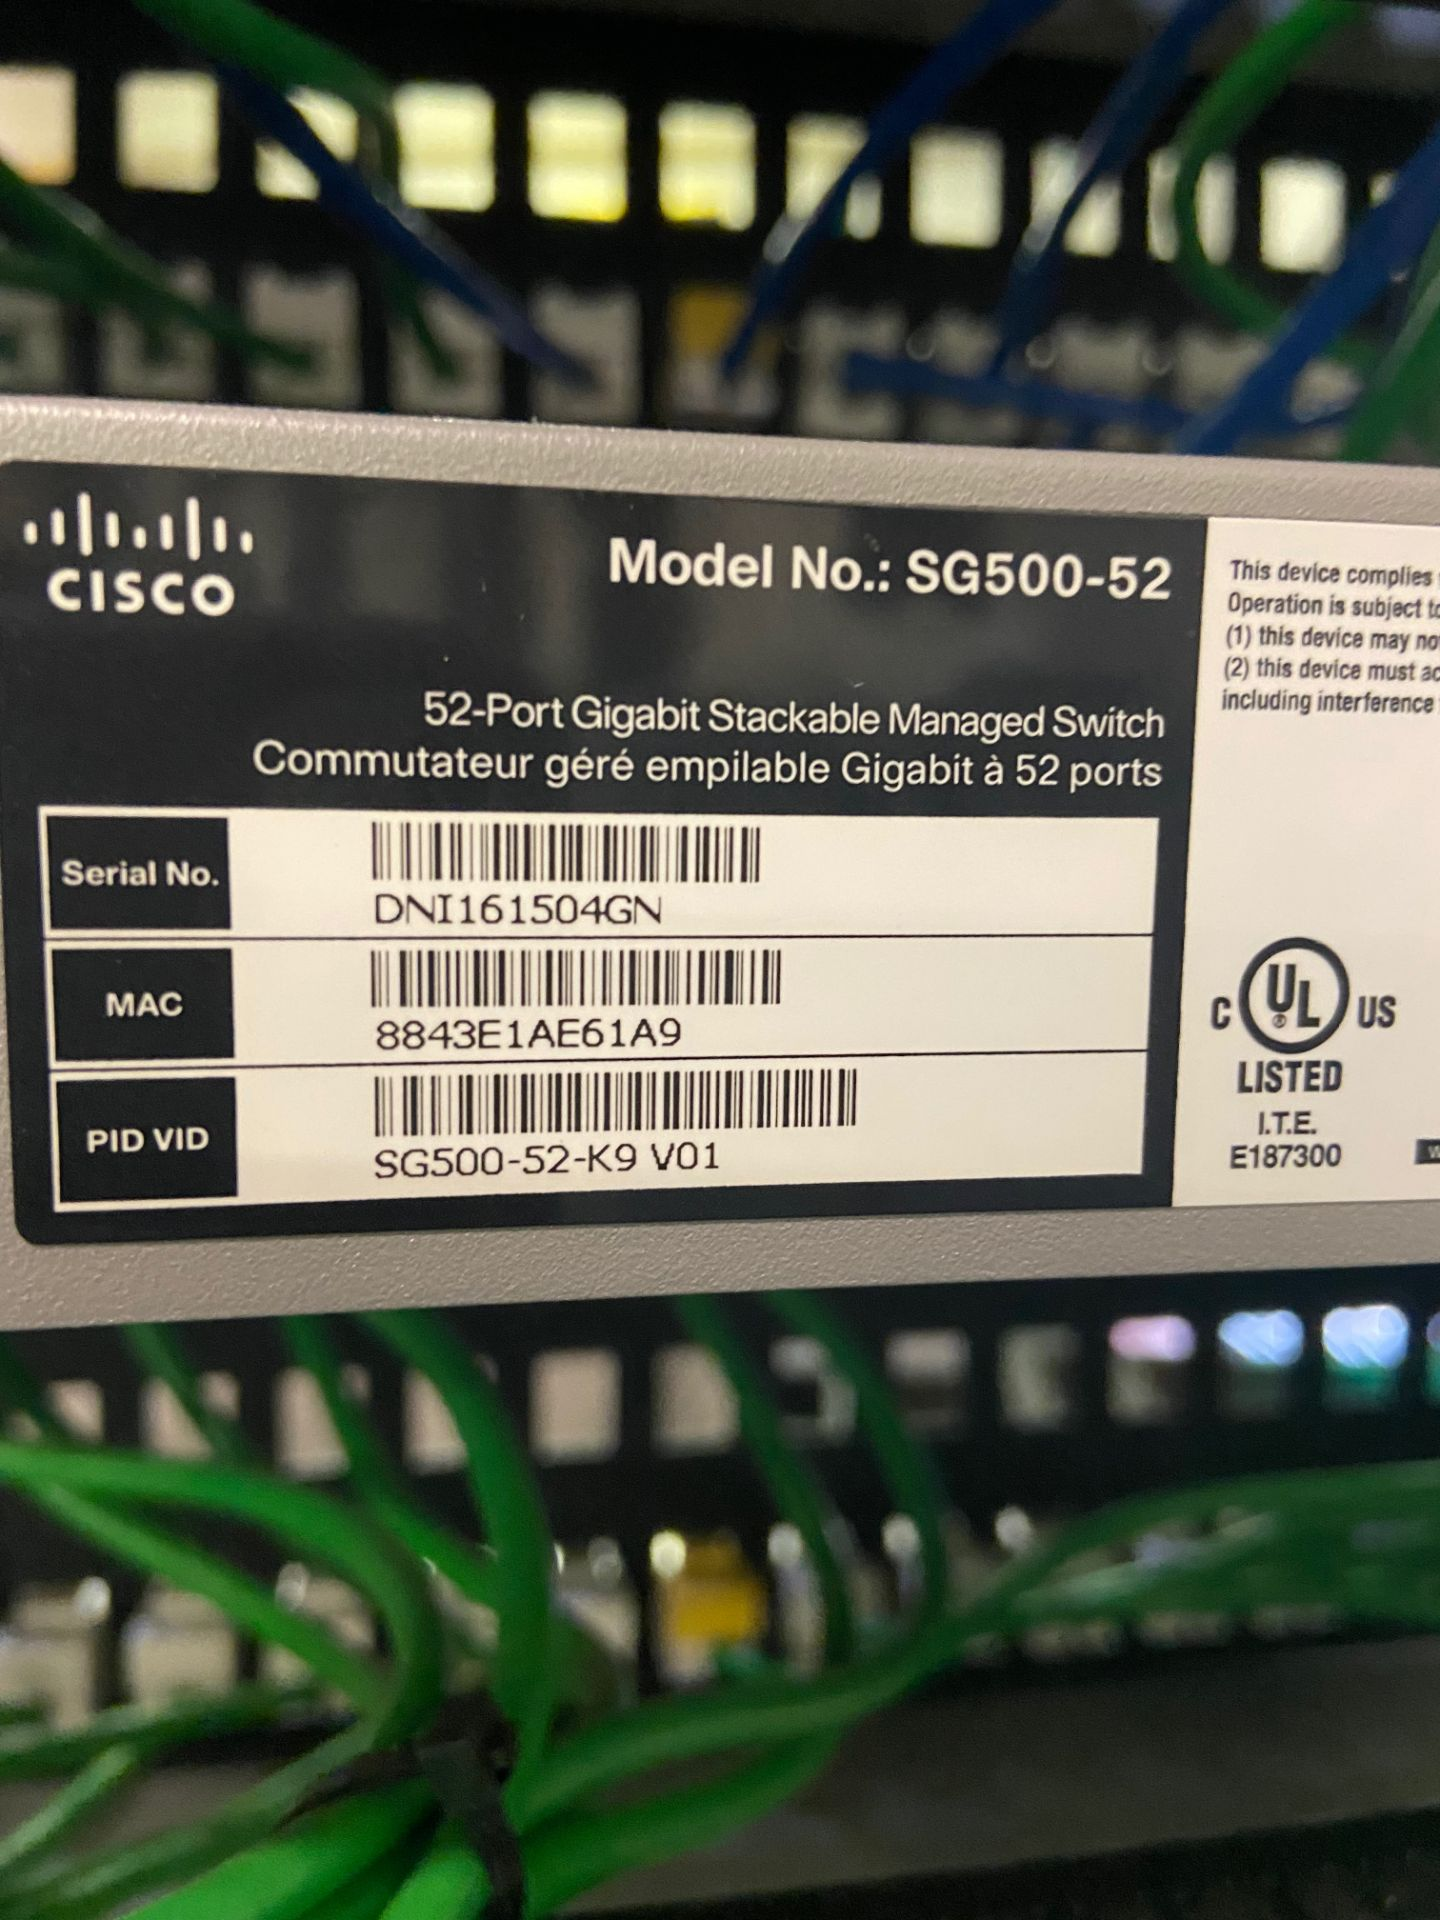 Lab Ethernet Connectivity Hub, SFP Interconnected, Qty 3: Cisco 52-Port Gigabit Stackable Manged - Image 8 of 12